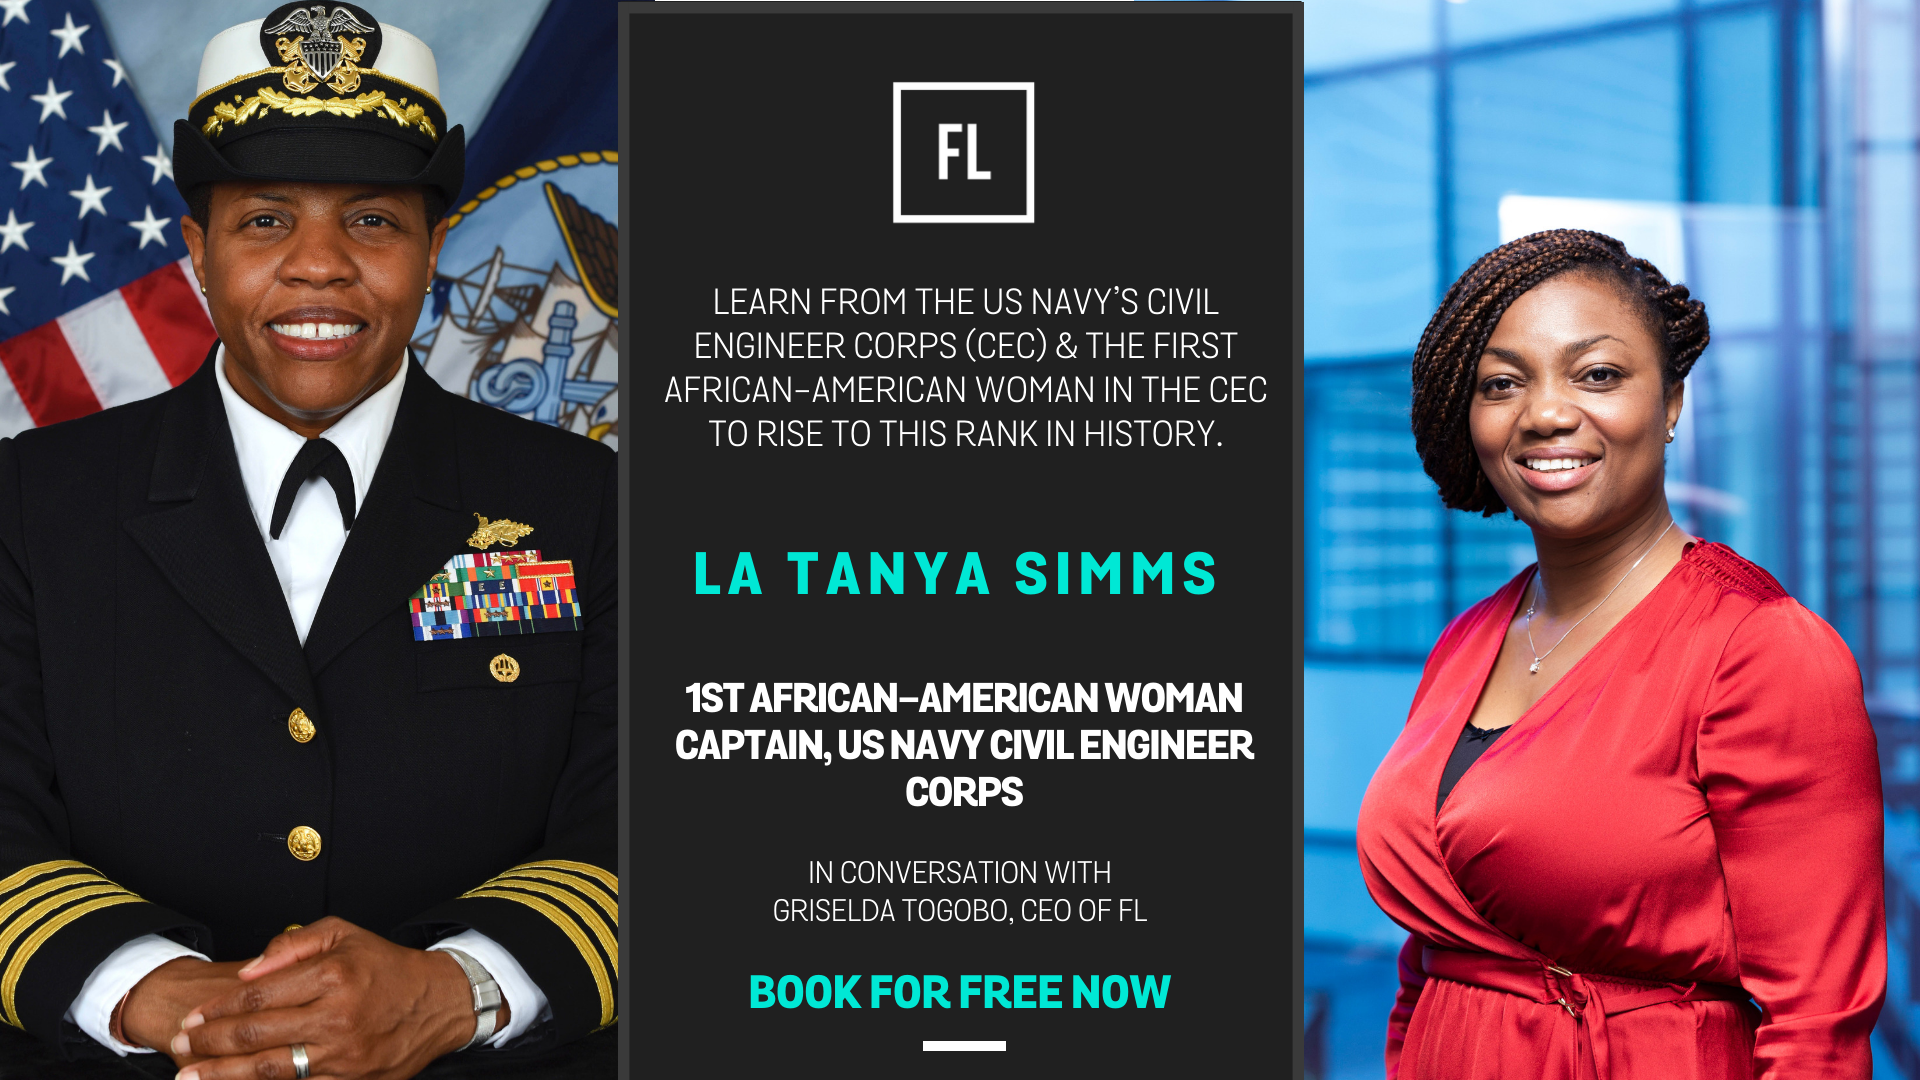 In Conversation with La Tanya Simms,1st African-American Woman Captain, US Navy Civil Engineer Corps